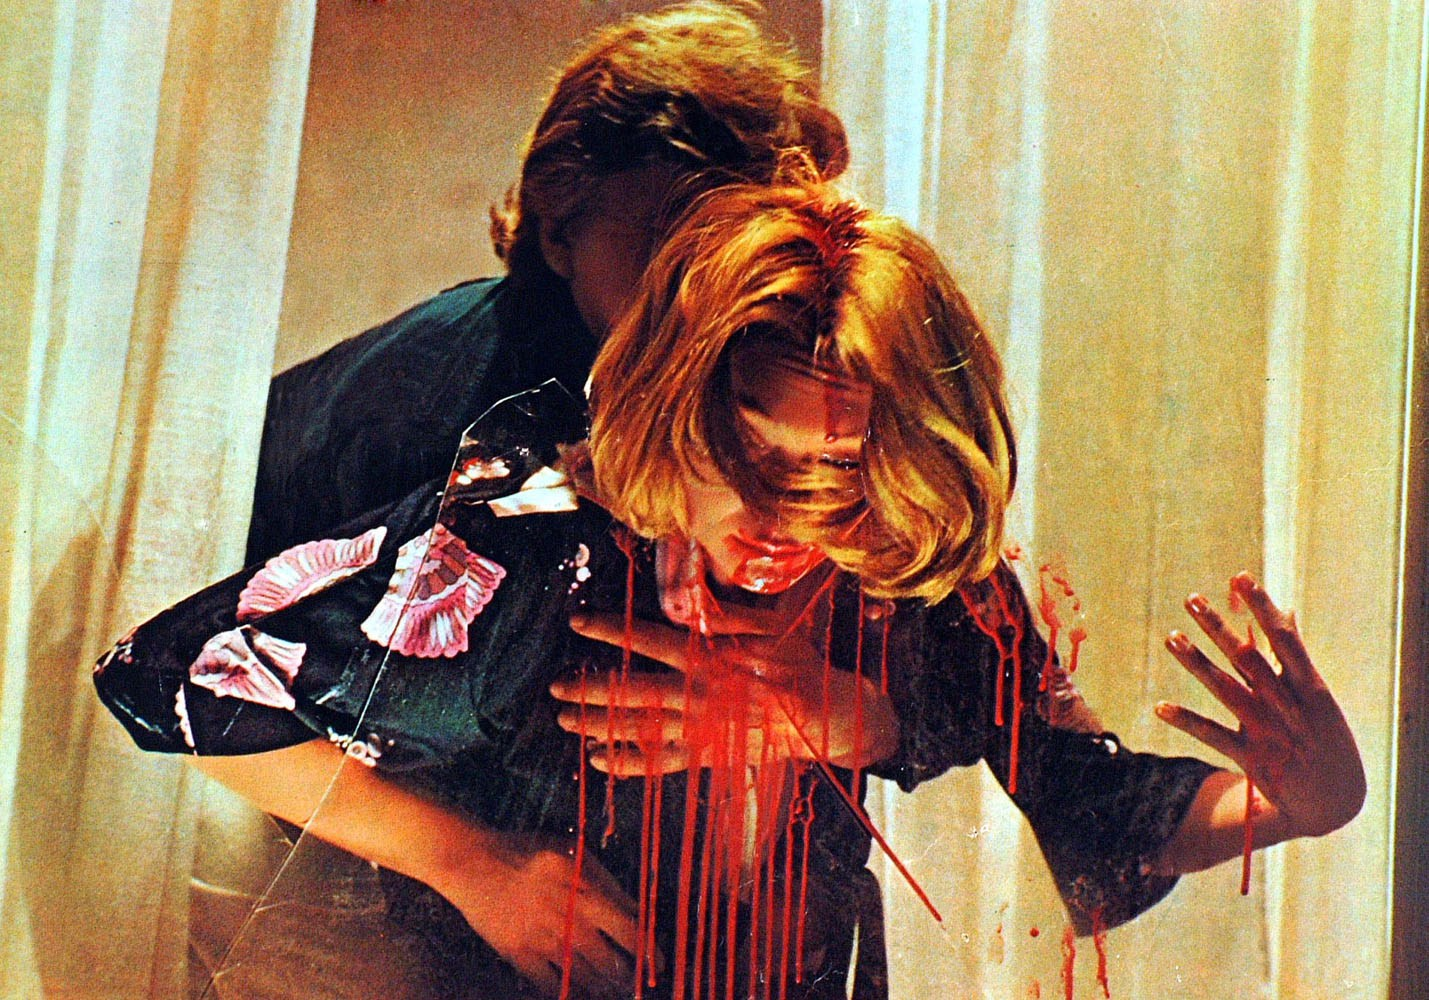 Psychic Macha Meril impaled on the glass of a broken window in Deep Red (1976)